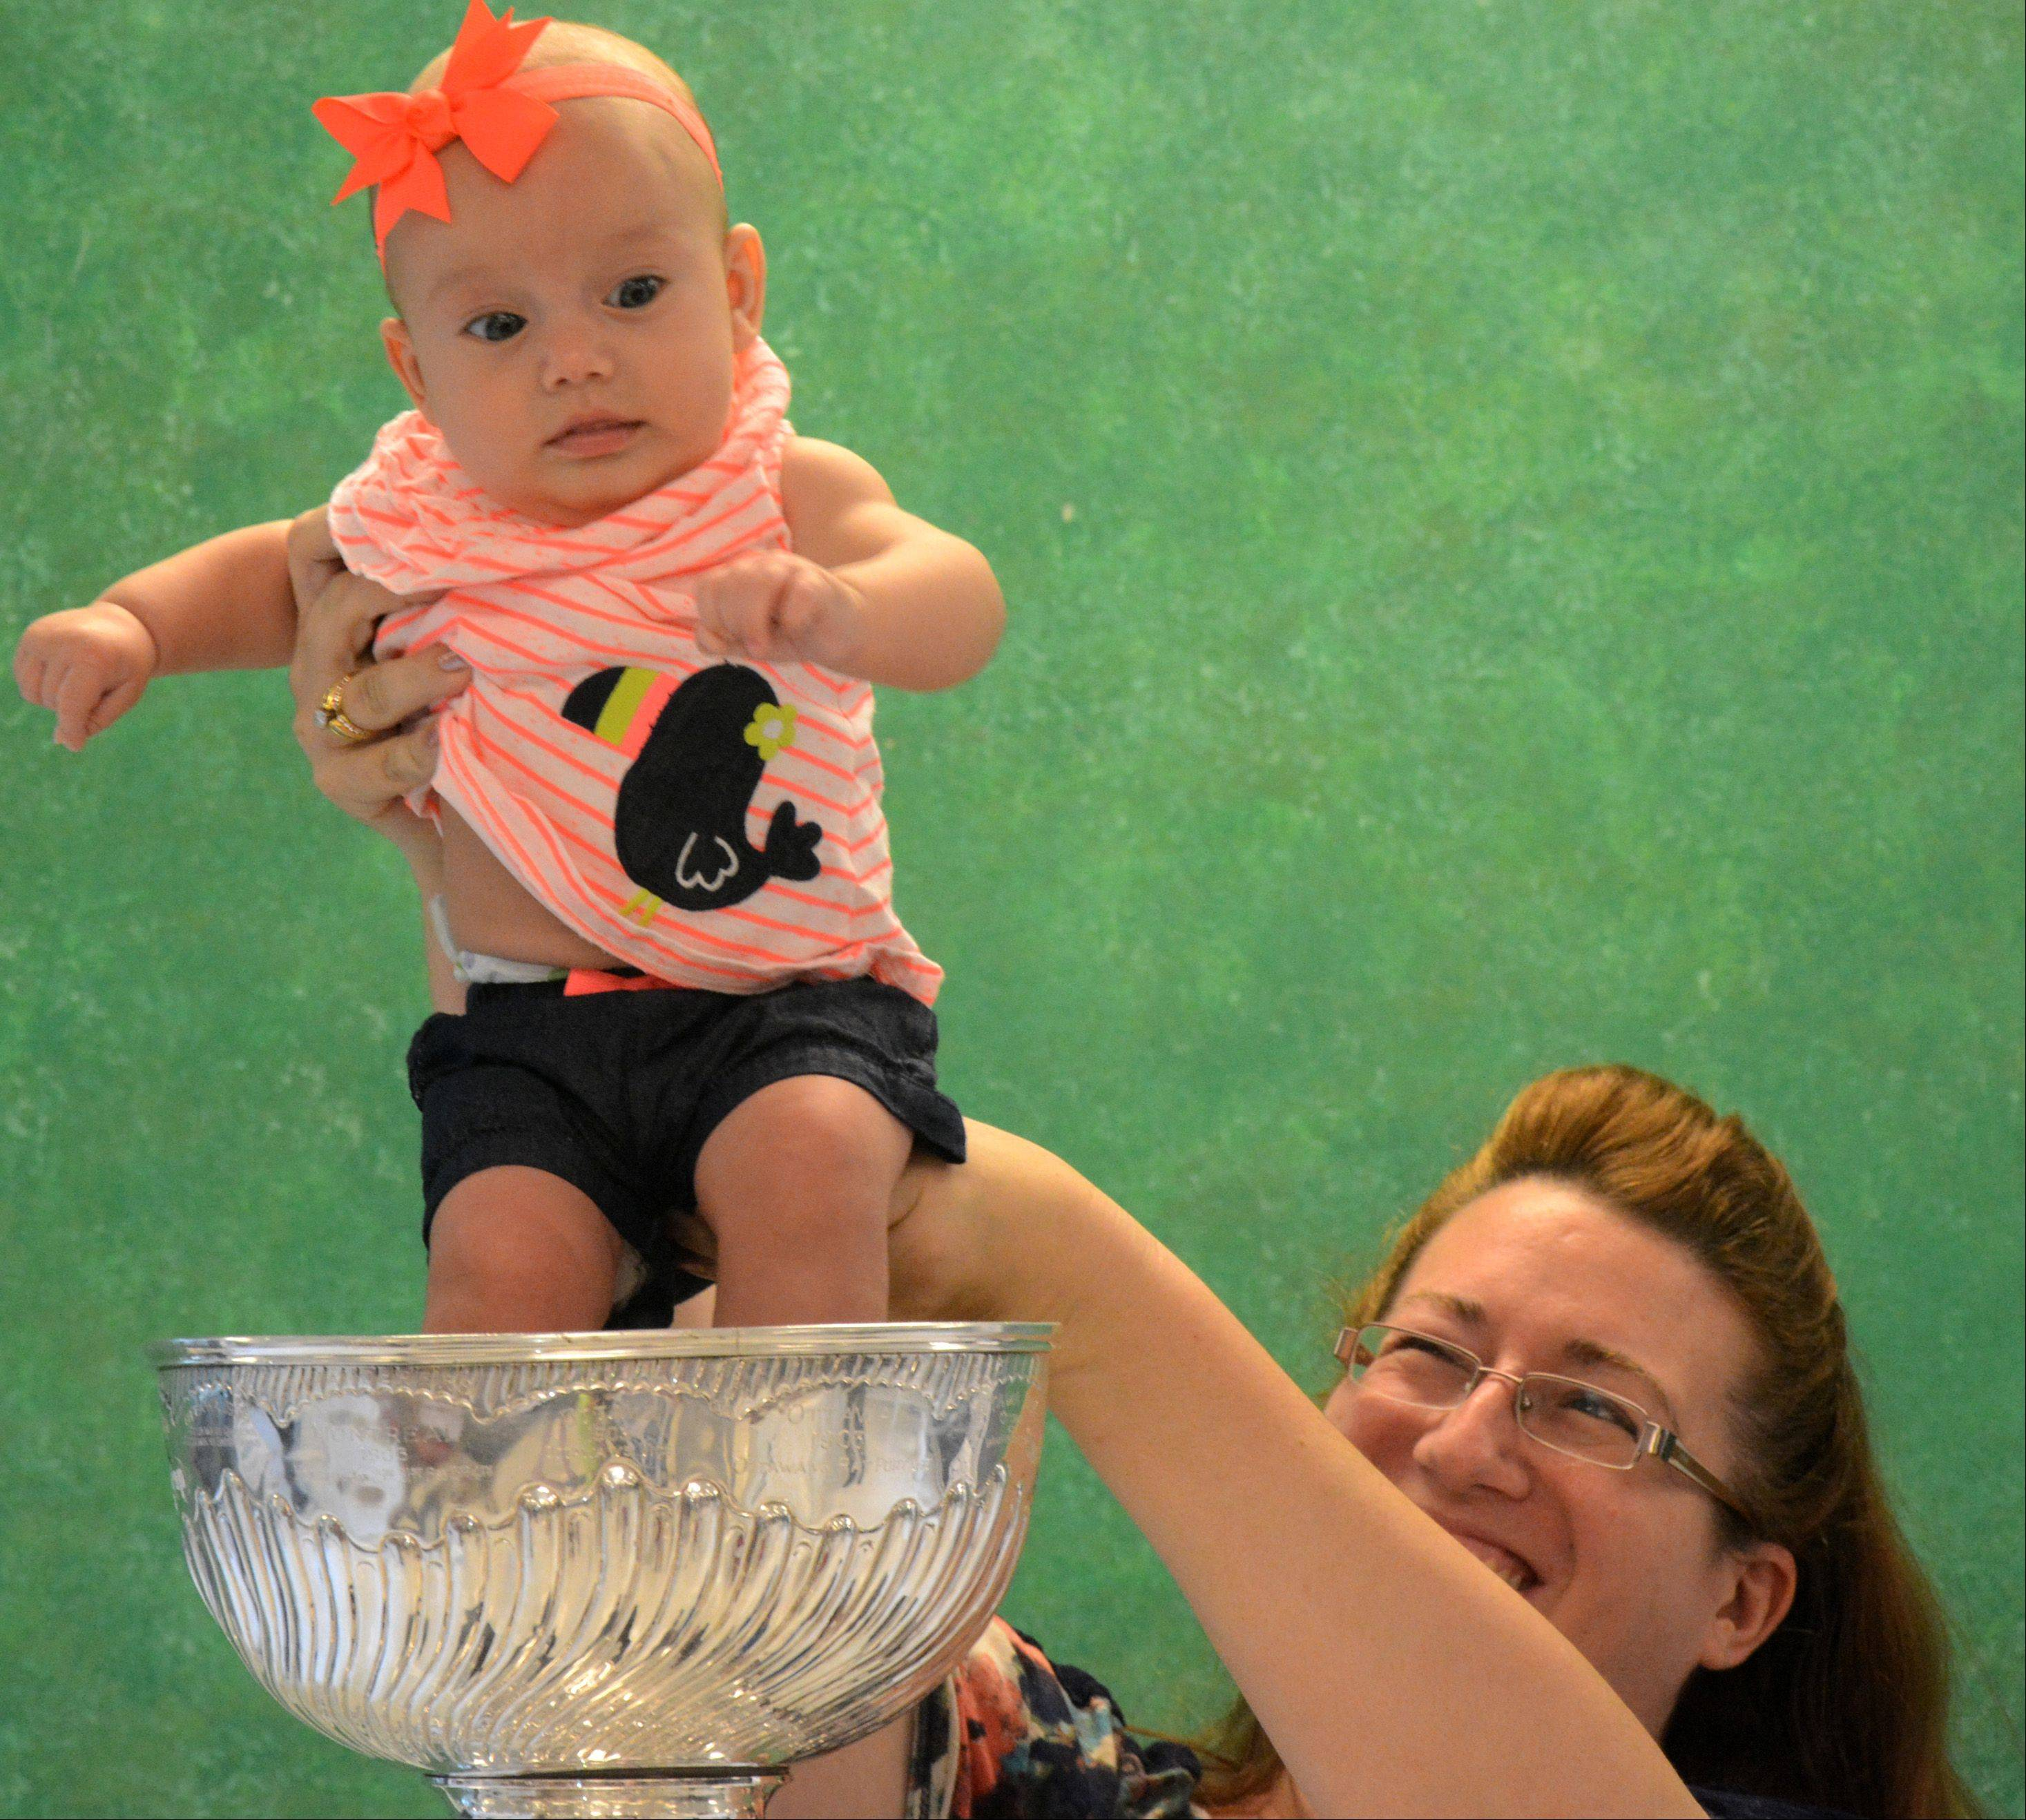 Candace Lewnard, of Mount Prospect, holds 4-month-old daughter Sofia in the Stanley Cup at the Daily Herald office Friday in Arlington Heights.